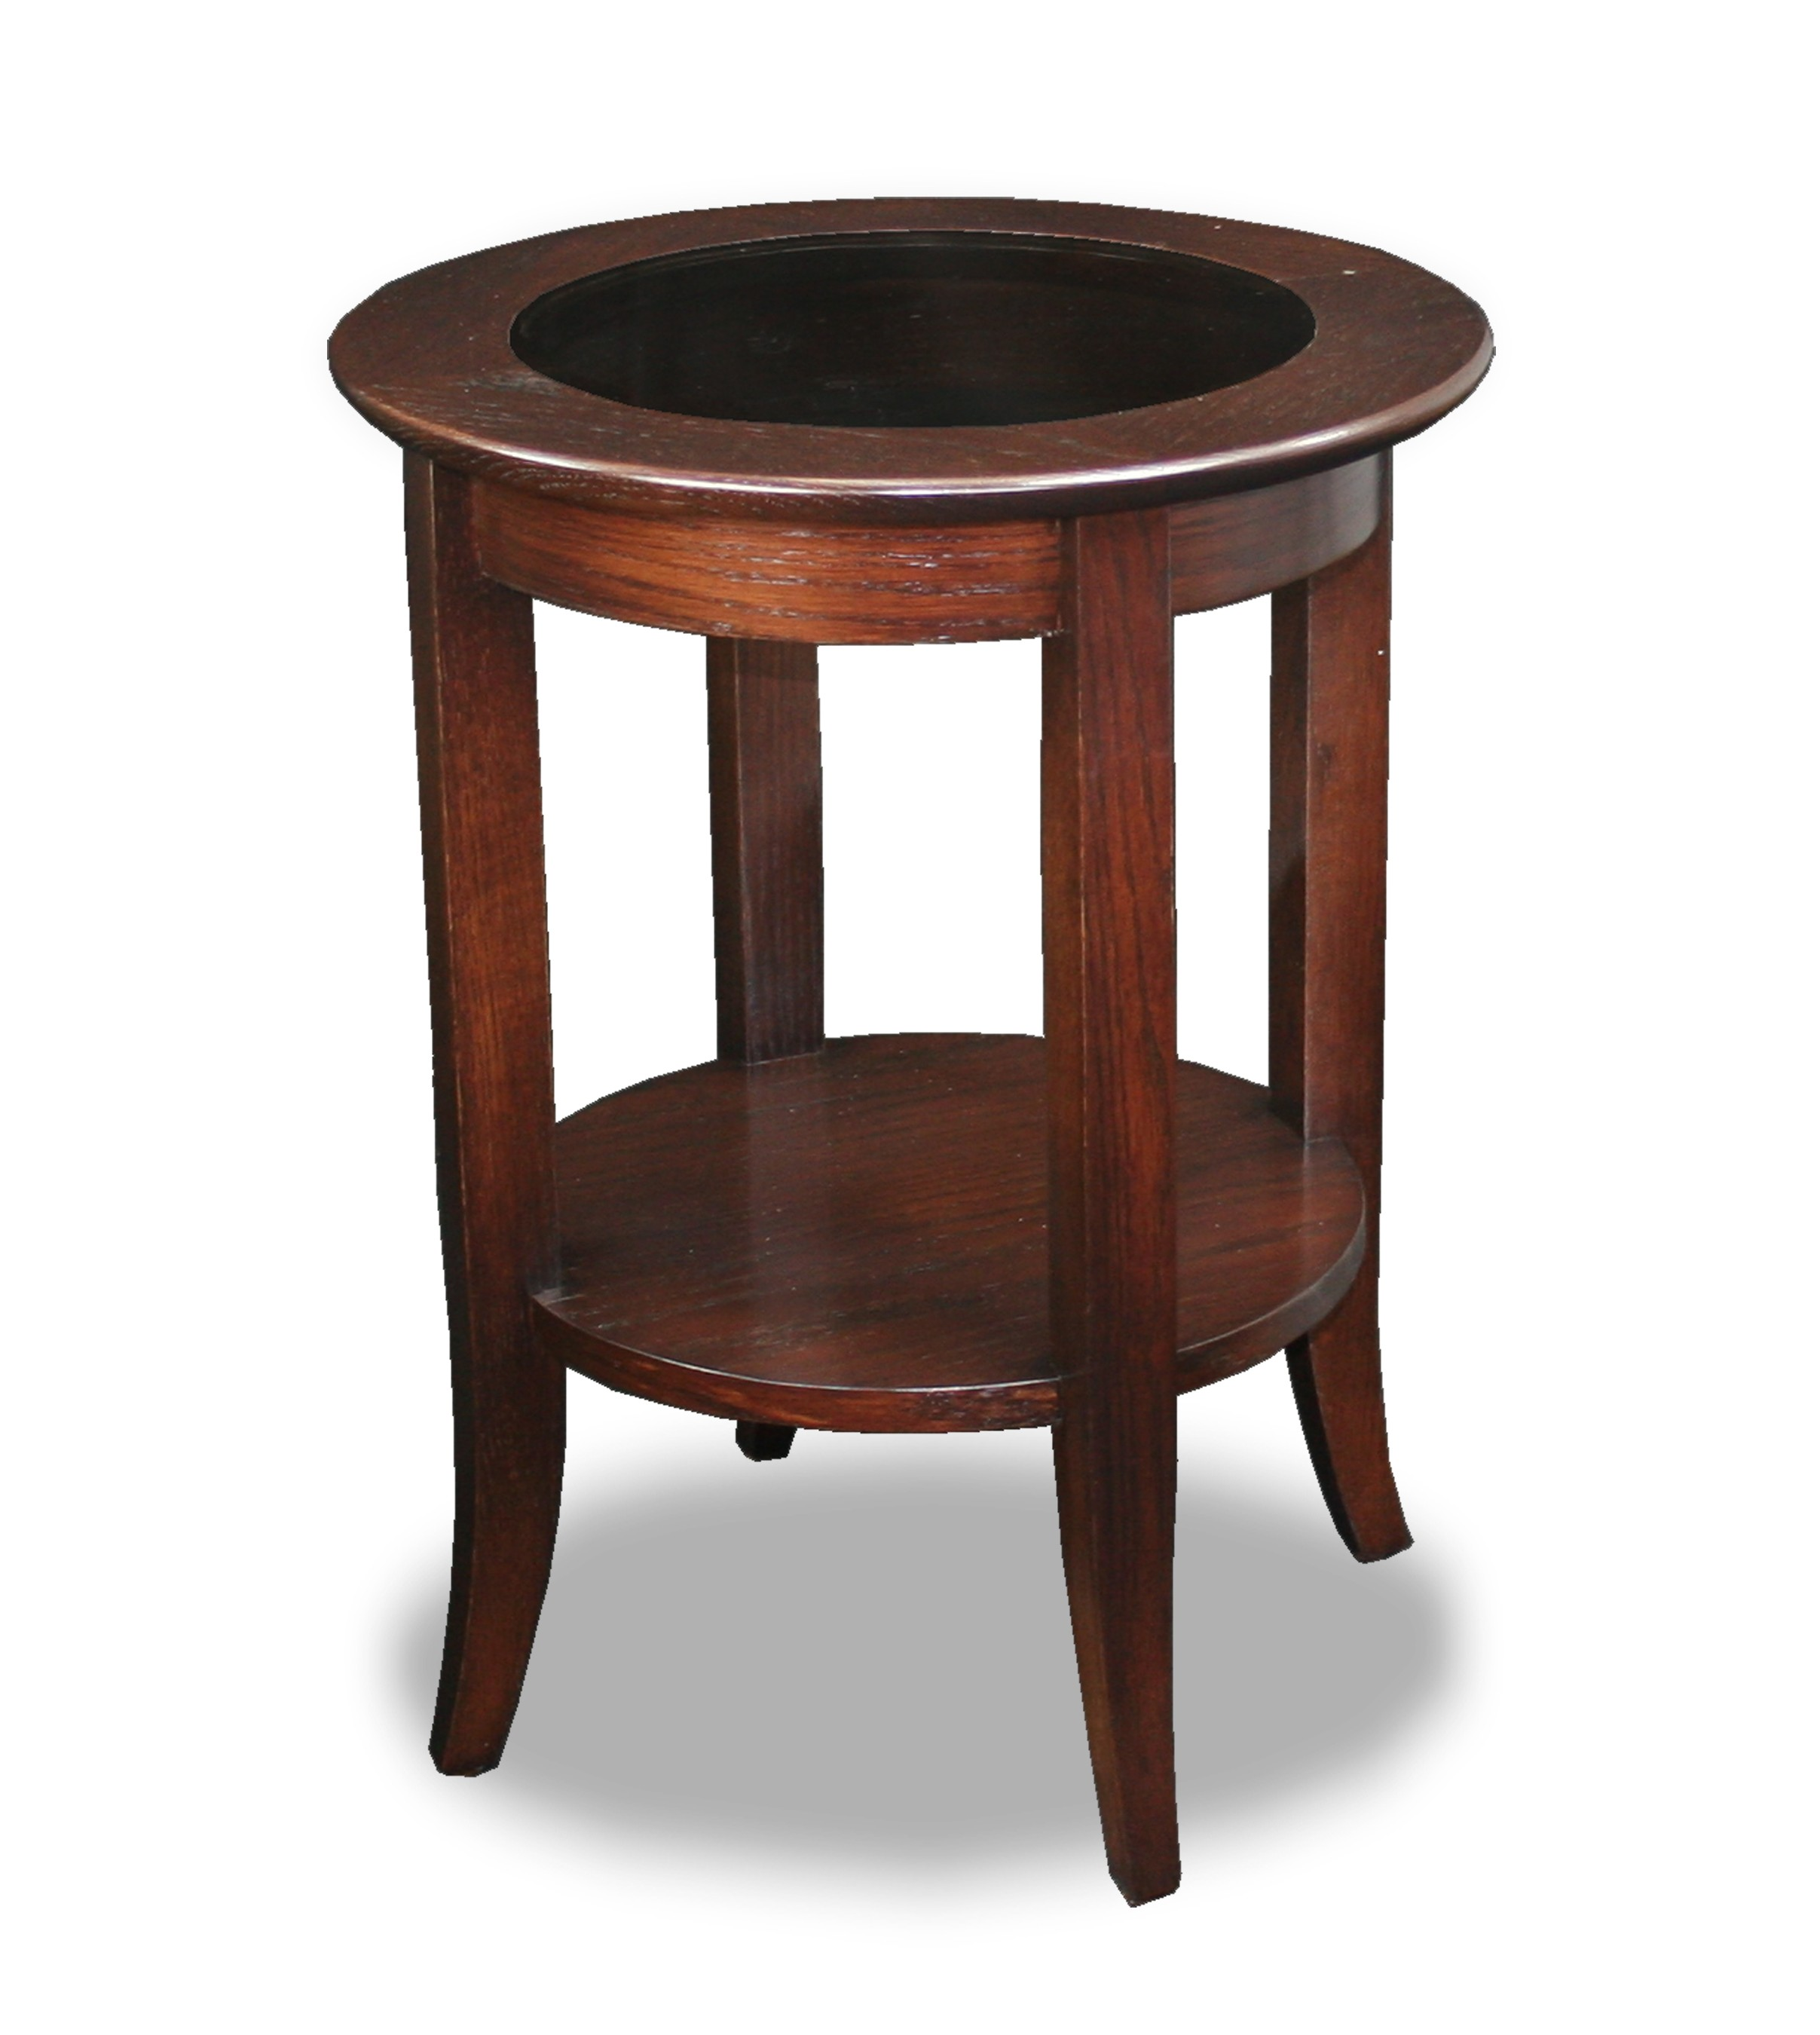 accent tables round table black living room end wood with storage corner for tall side coffee and set dark teal circular drawer full size best small rectangular big green egg ikea